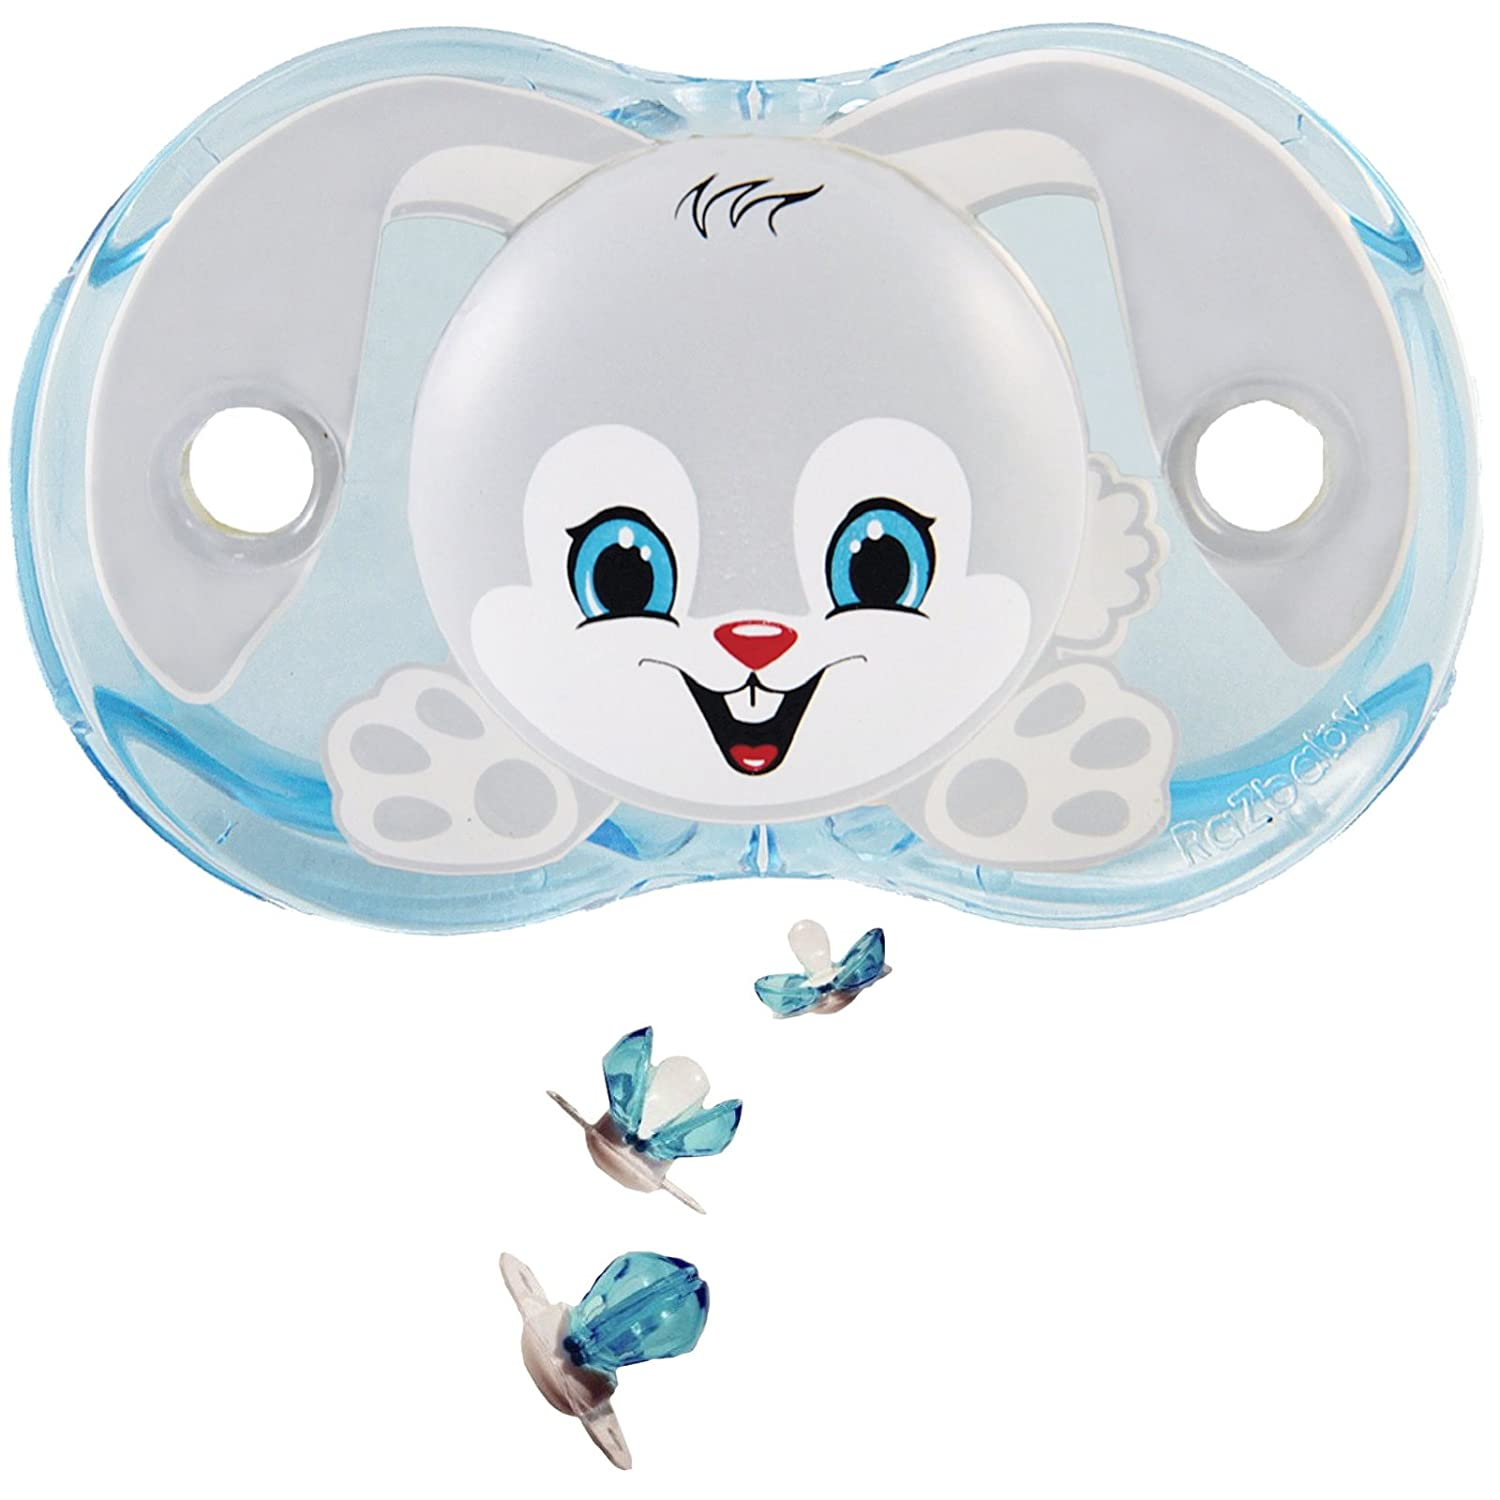 Baby Chupete razbaby® Keep It de Kleen Ziggy Bunny: Amazon.es: Bebé